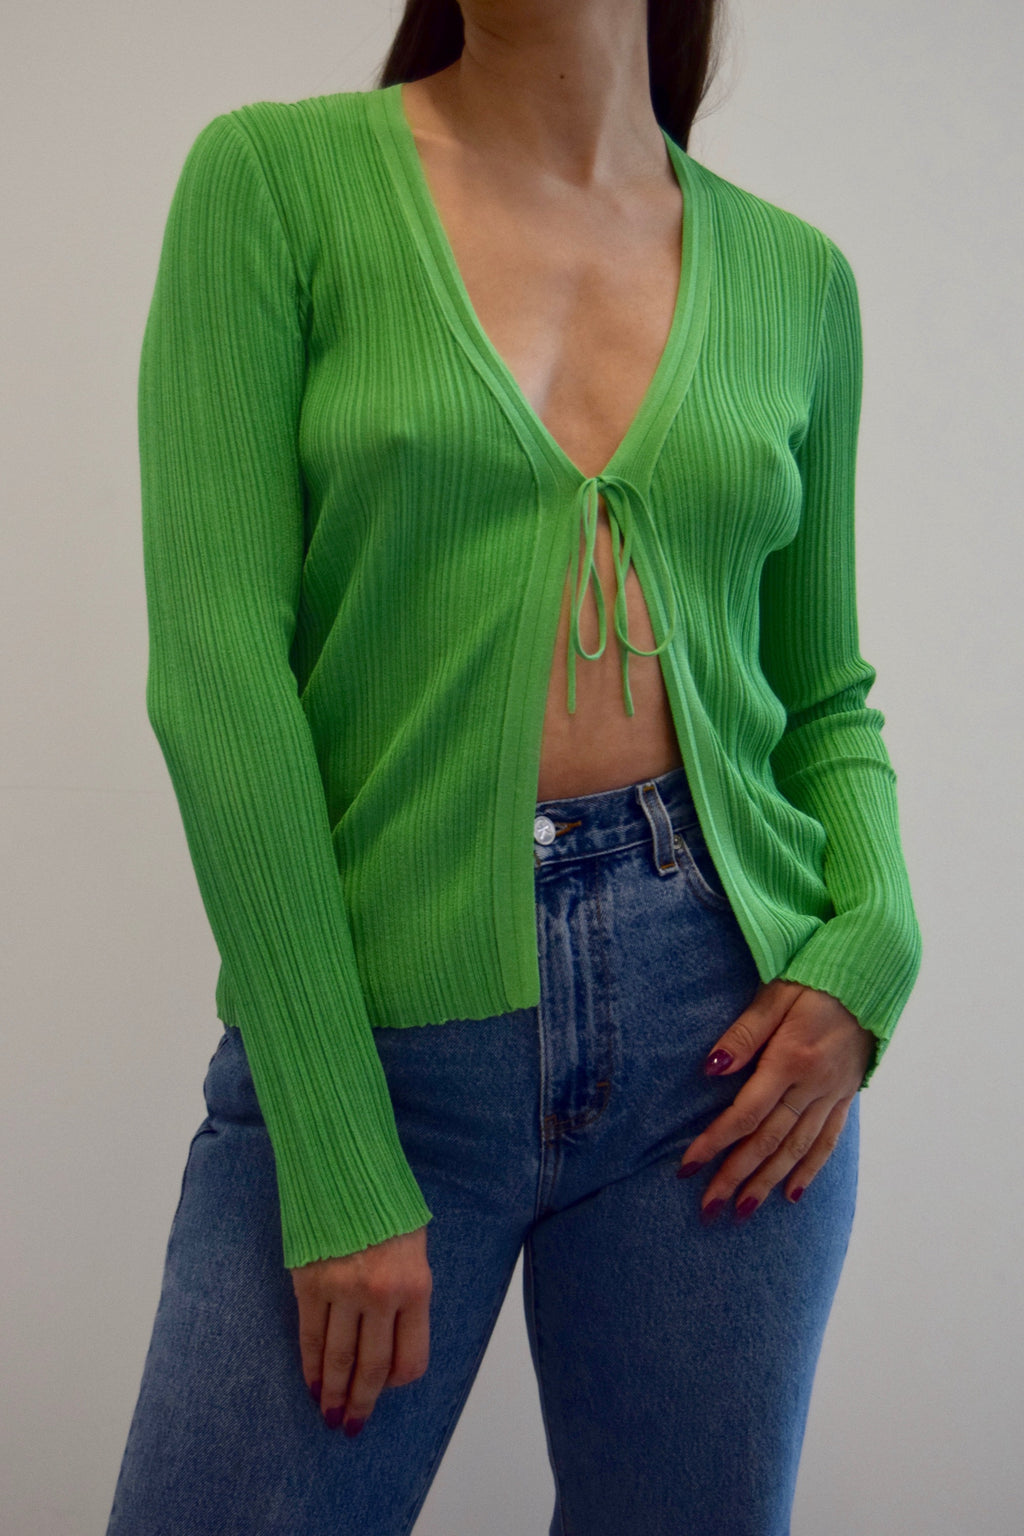 Mountain Dew Silk Knit Top FREE SHIPPING TO THE U.S.